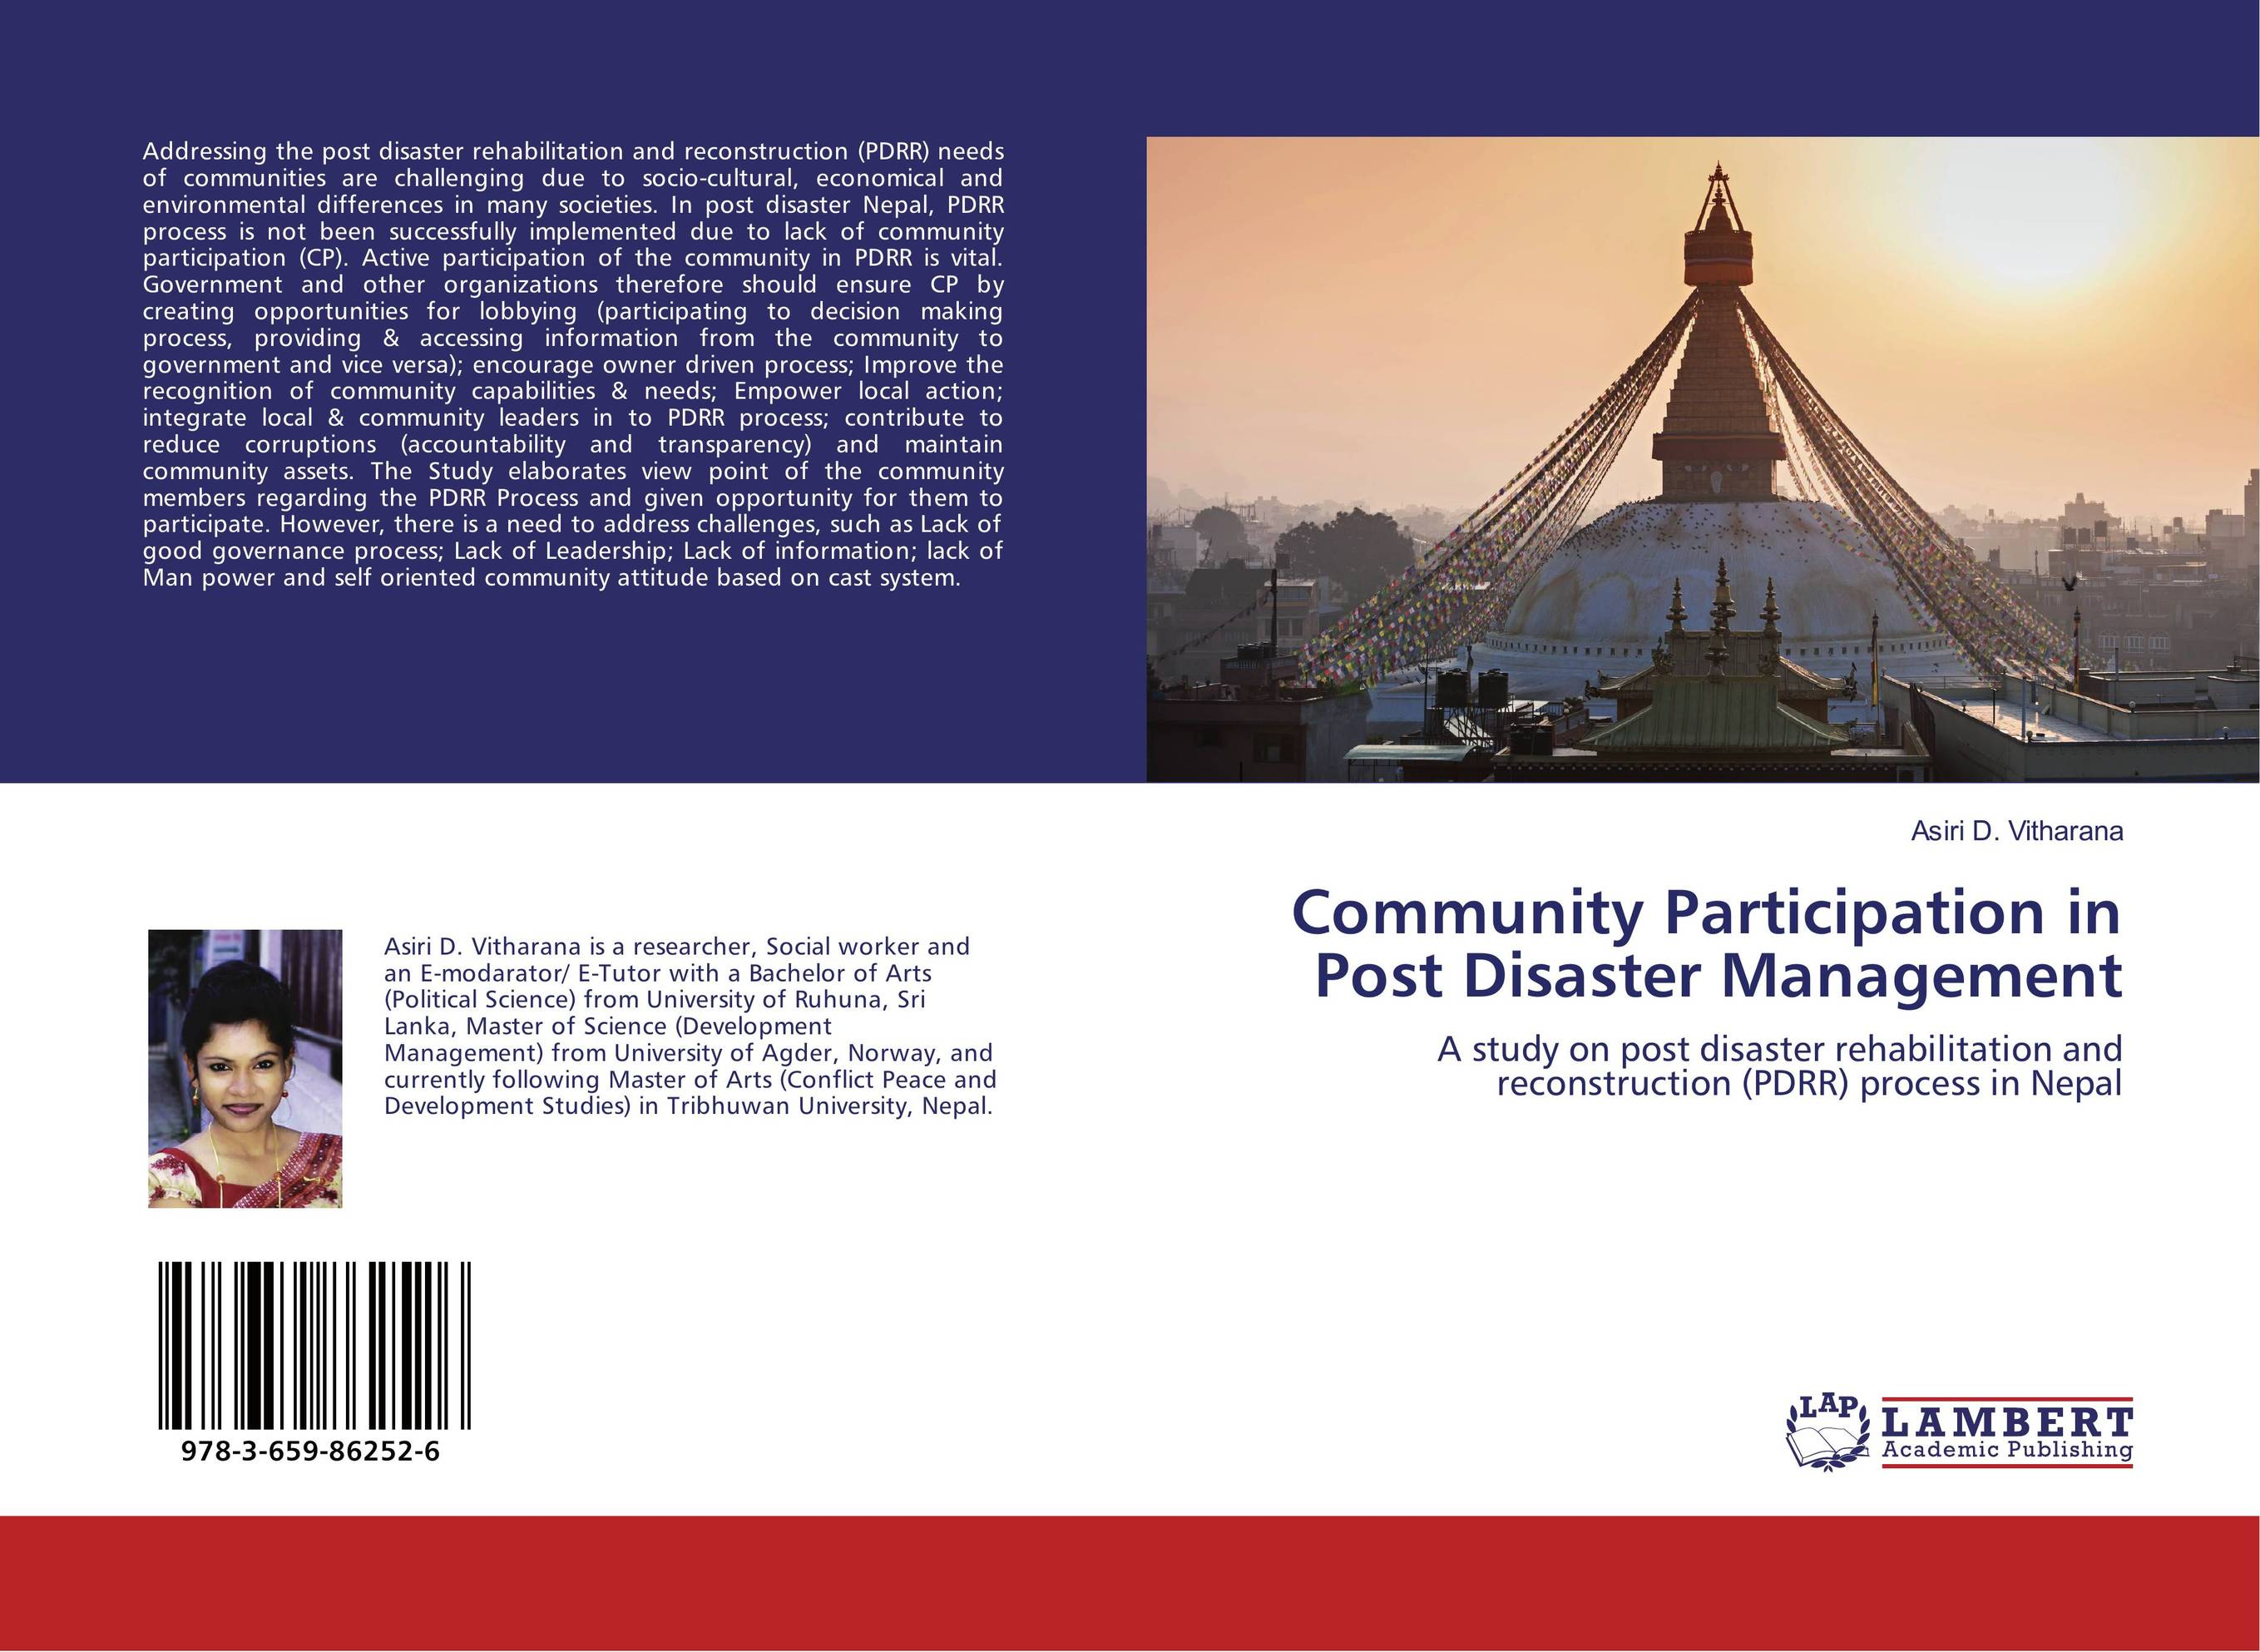 Community Participation in Post Disaster Management driven to distraction